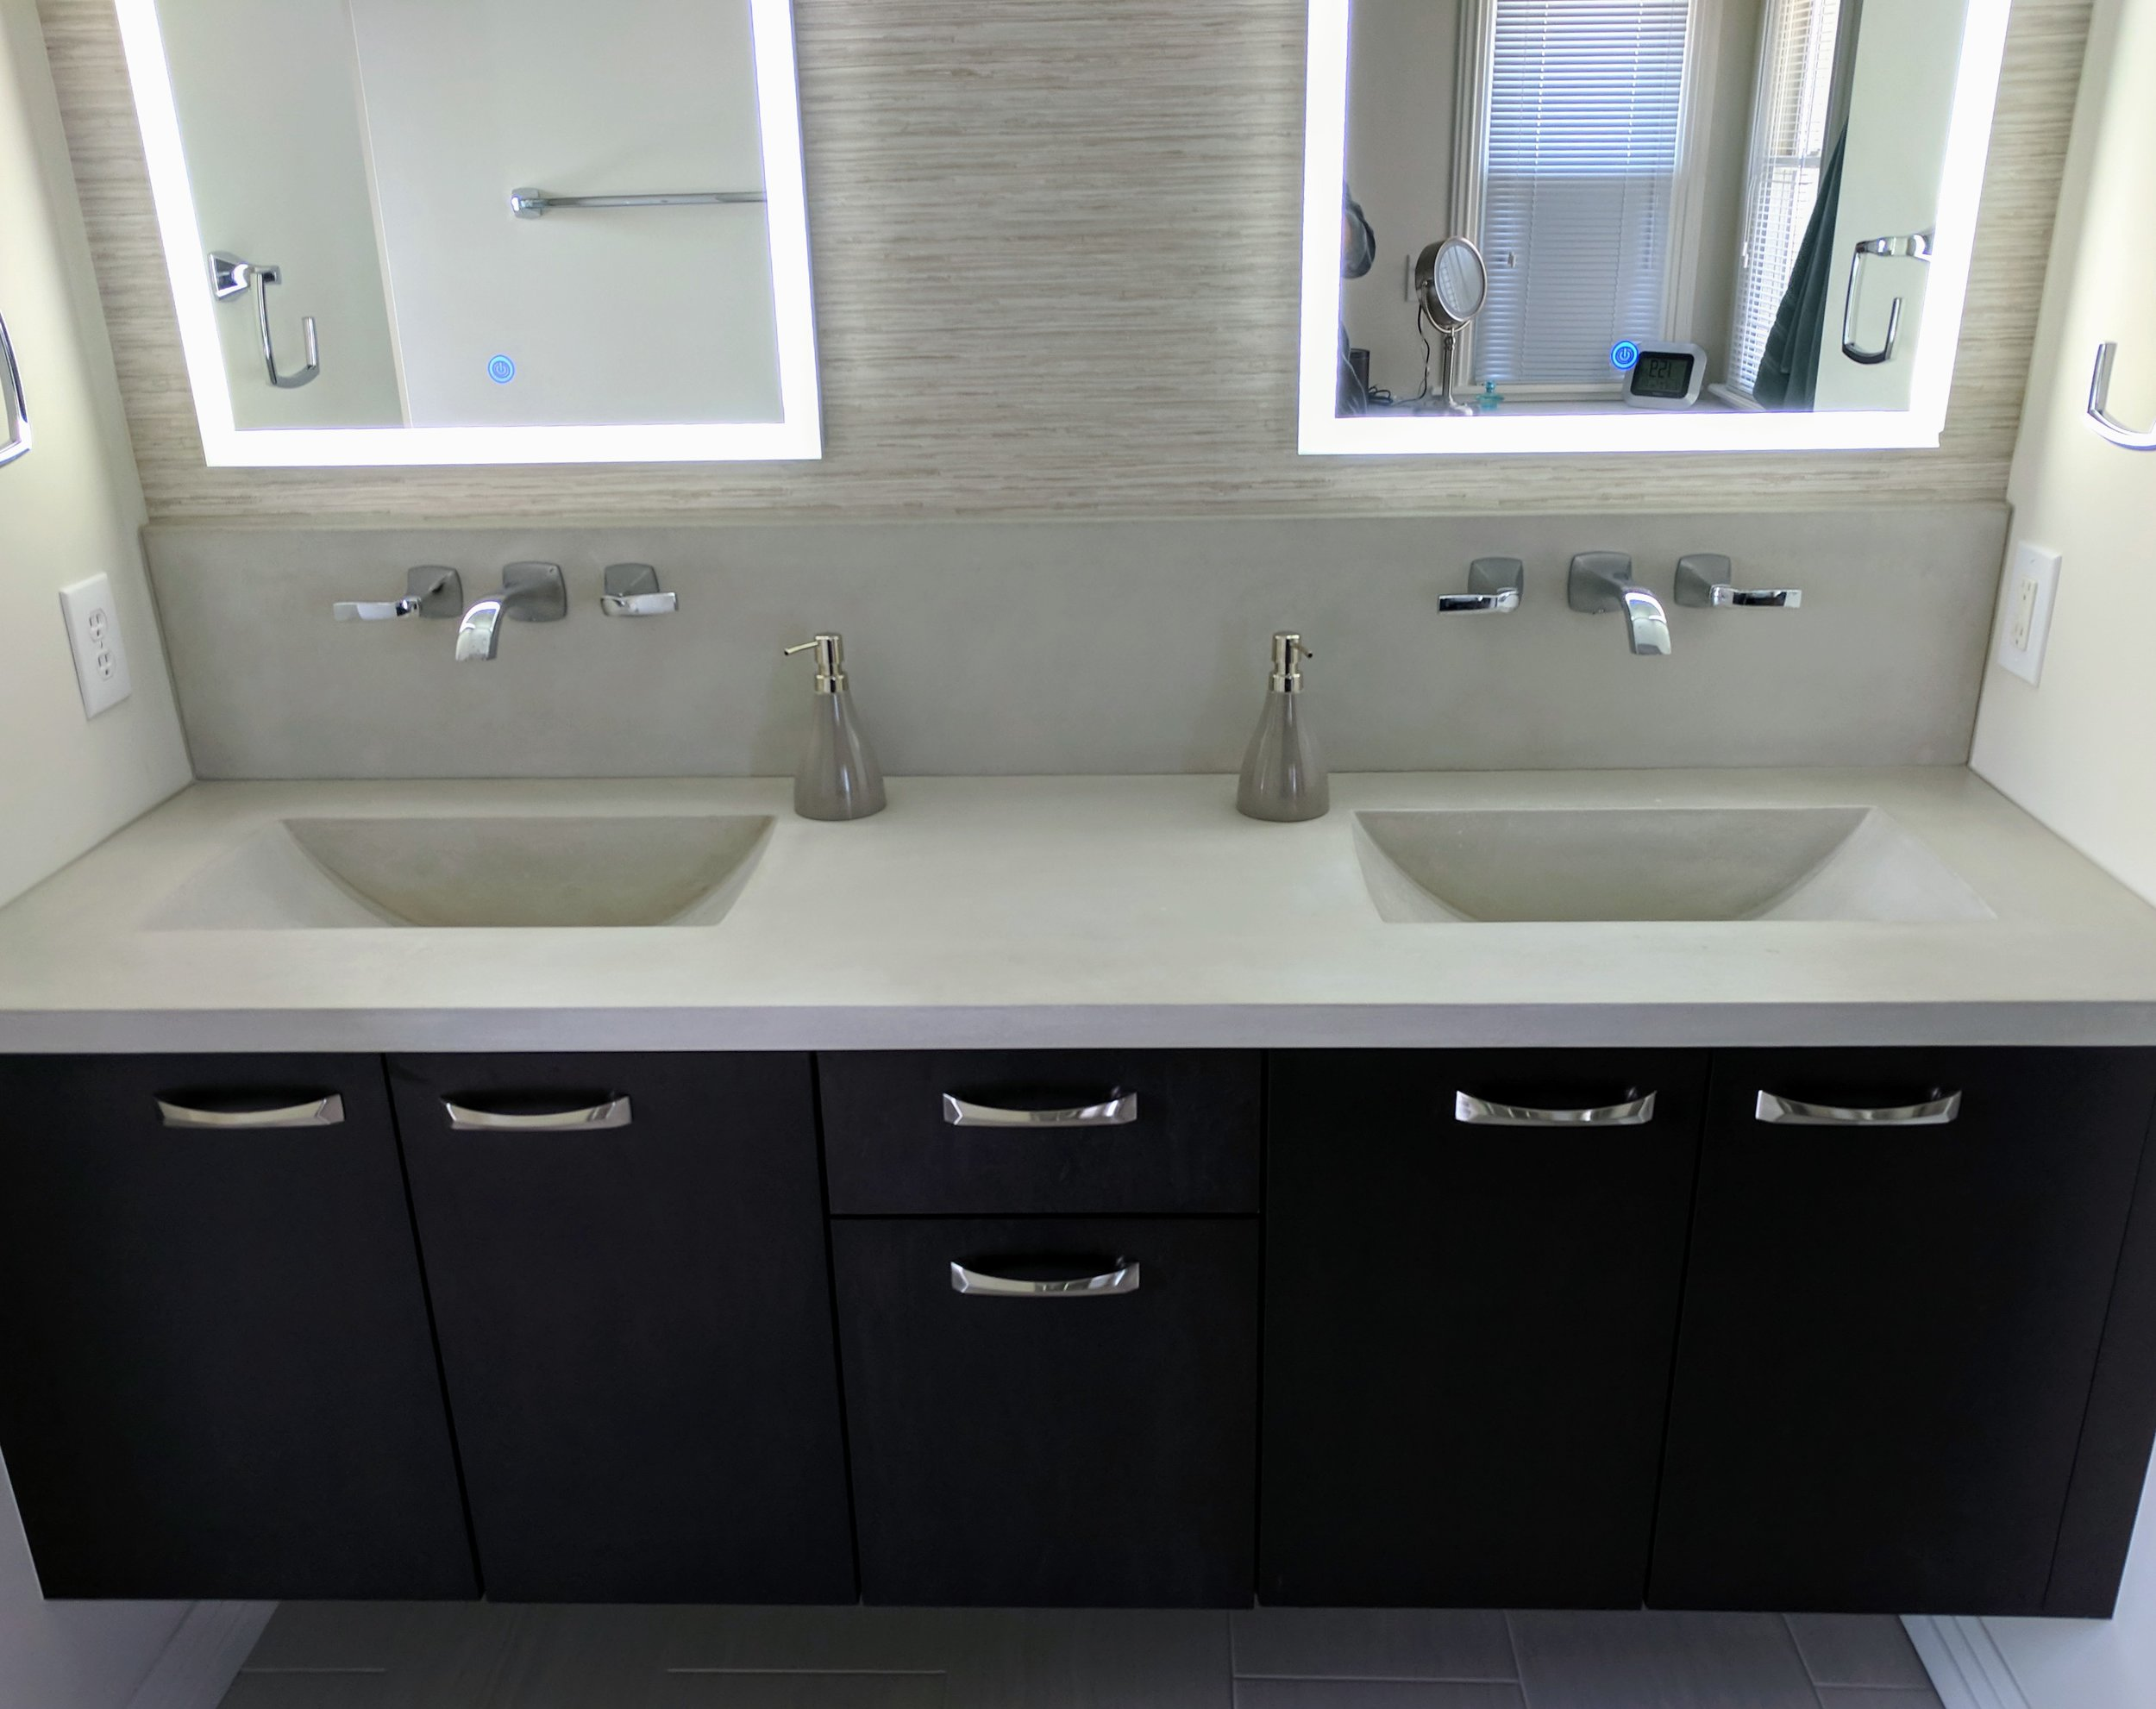 Floating Vanity withIntegral Barrel Sinks - Design by Premiere Coastal Contracting -Cabinets by Cozy Kitchen Group